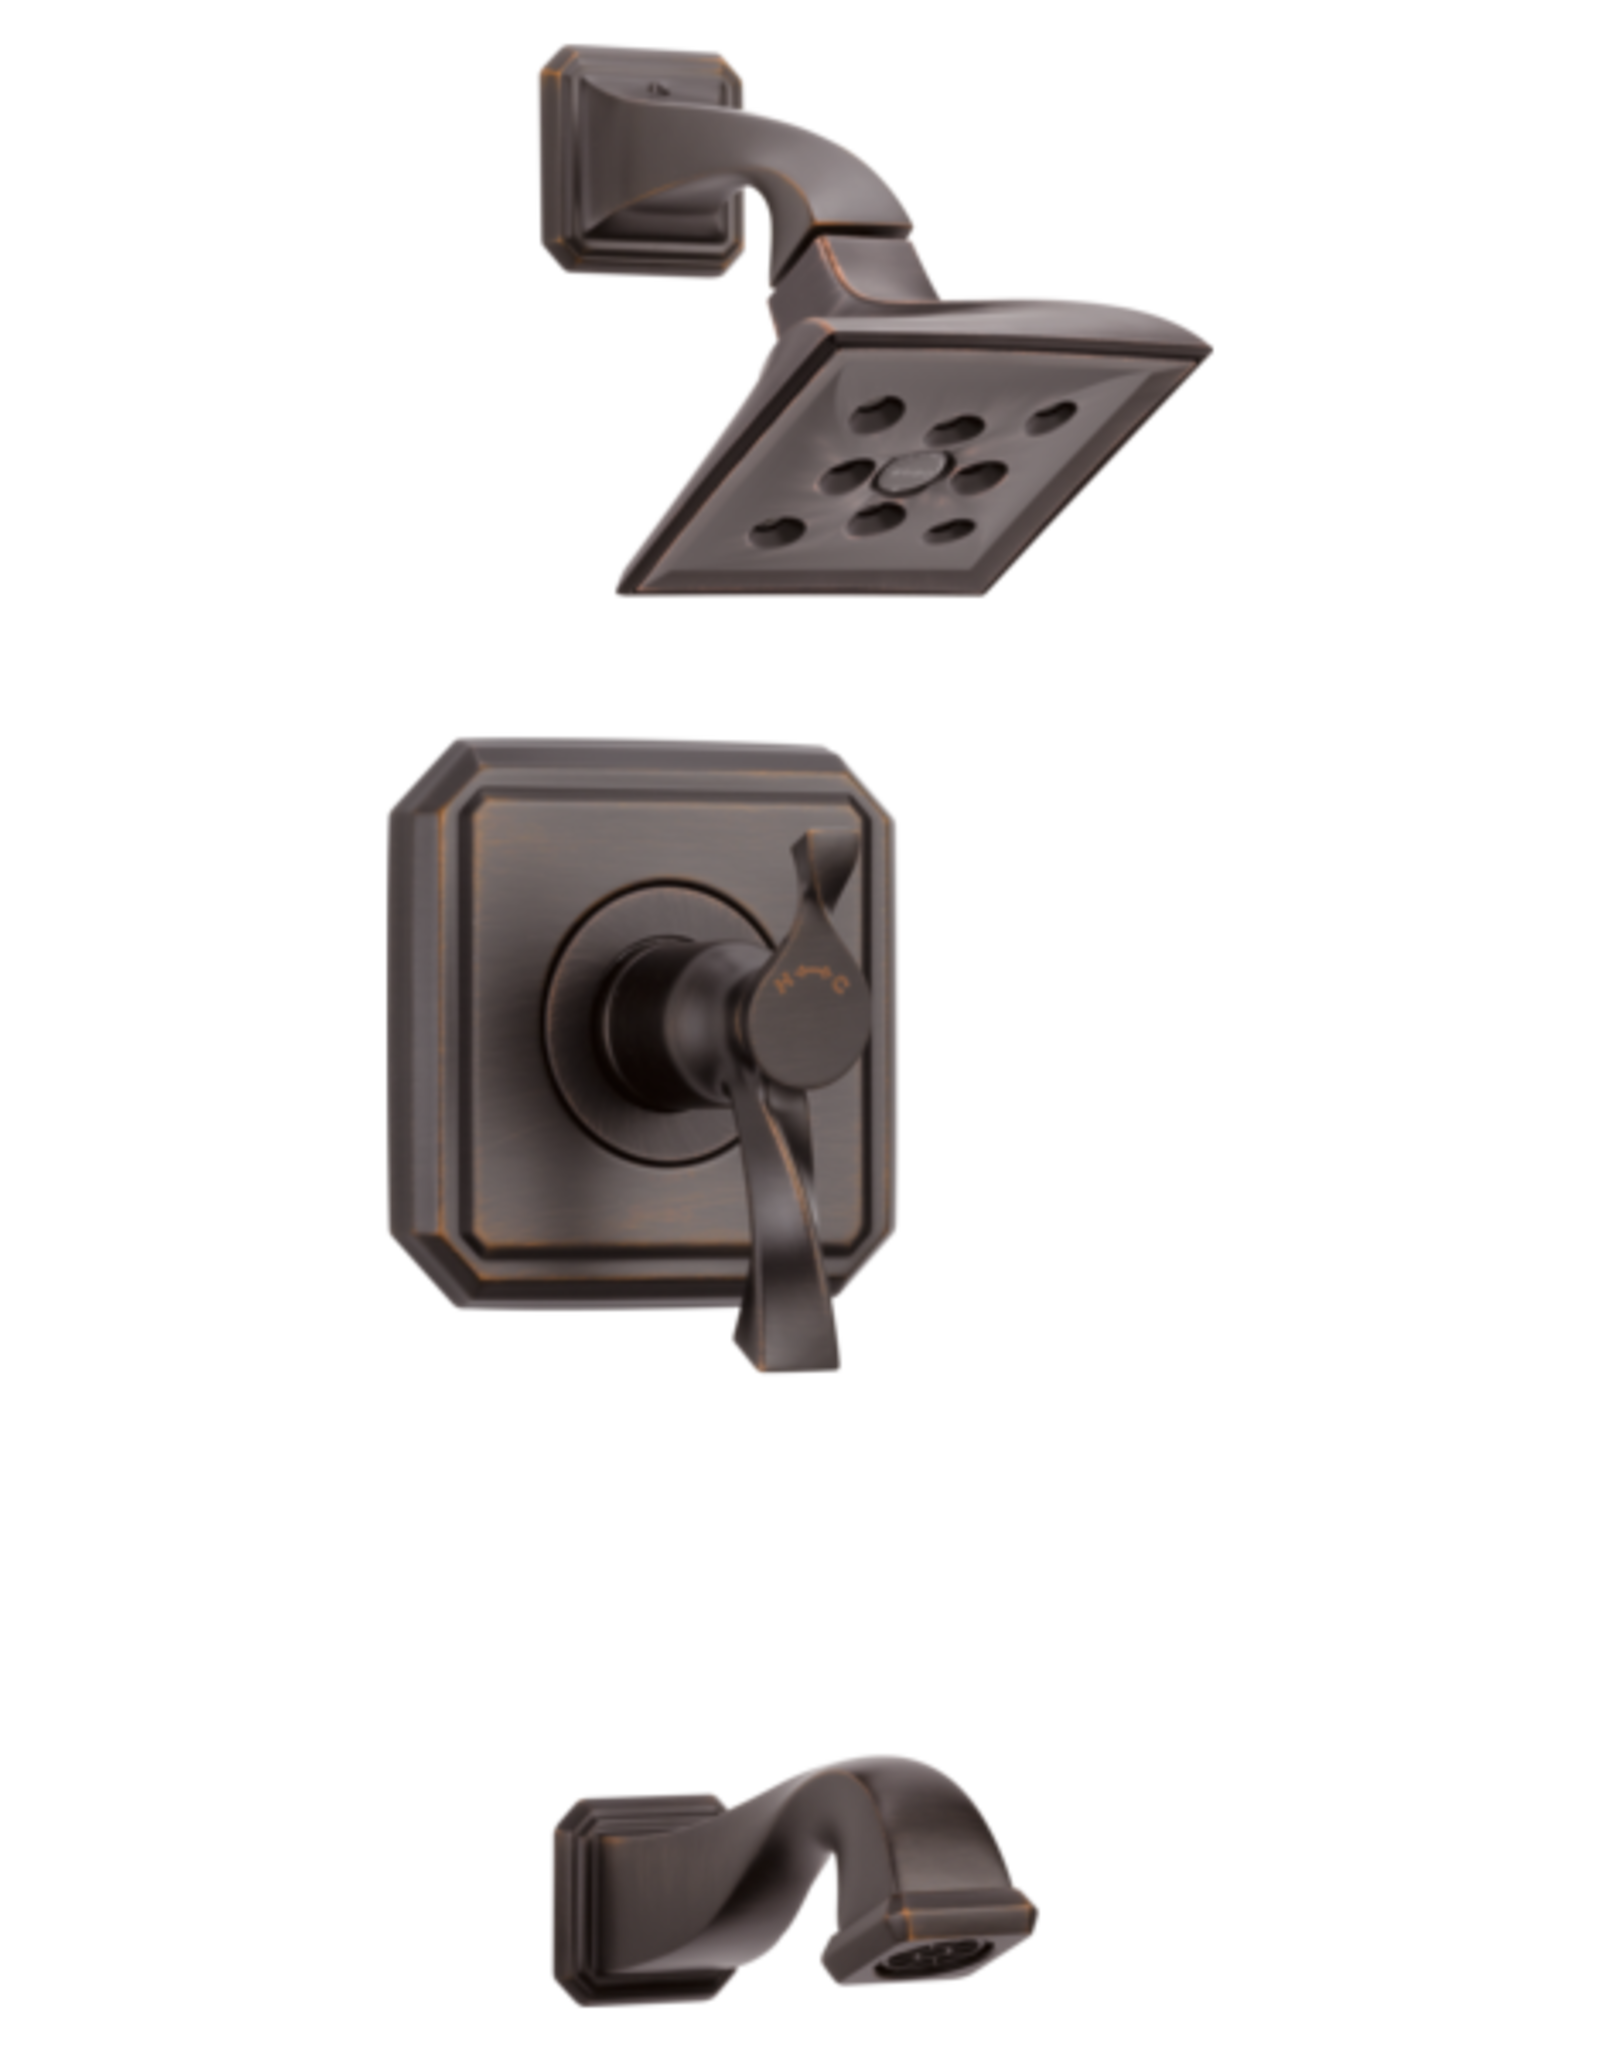 Brizo BRIZO VIRAGE - VENETIAN BRONZE TEMPASSURE THERMOSTATIC TUB/SHOWER TRIM